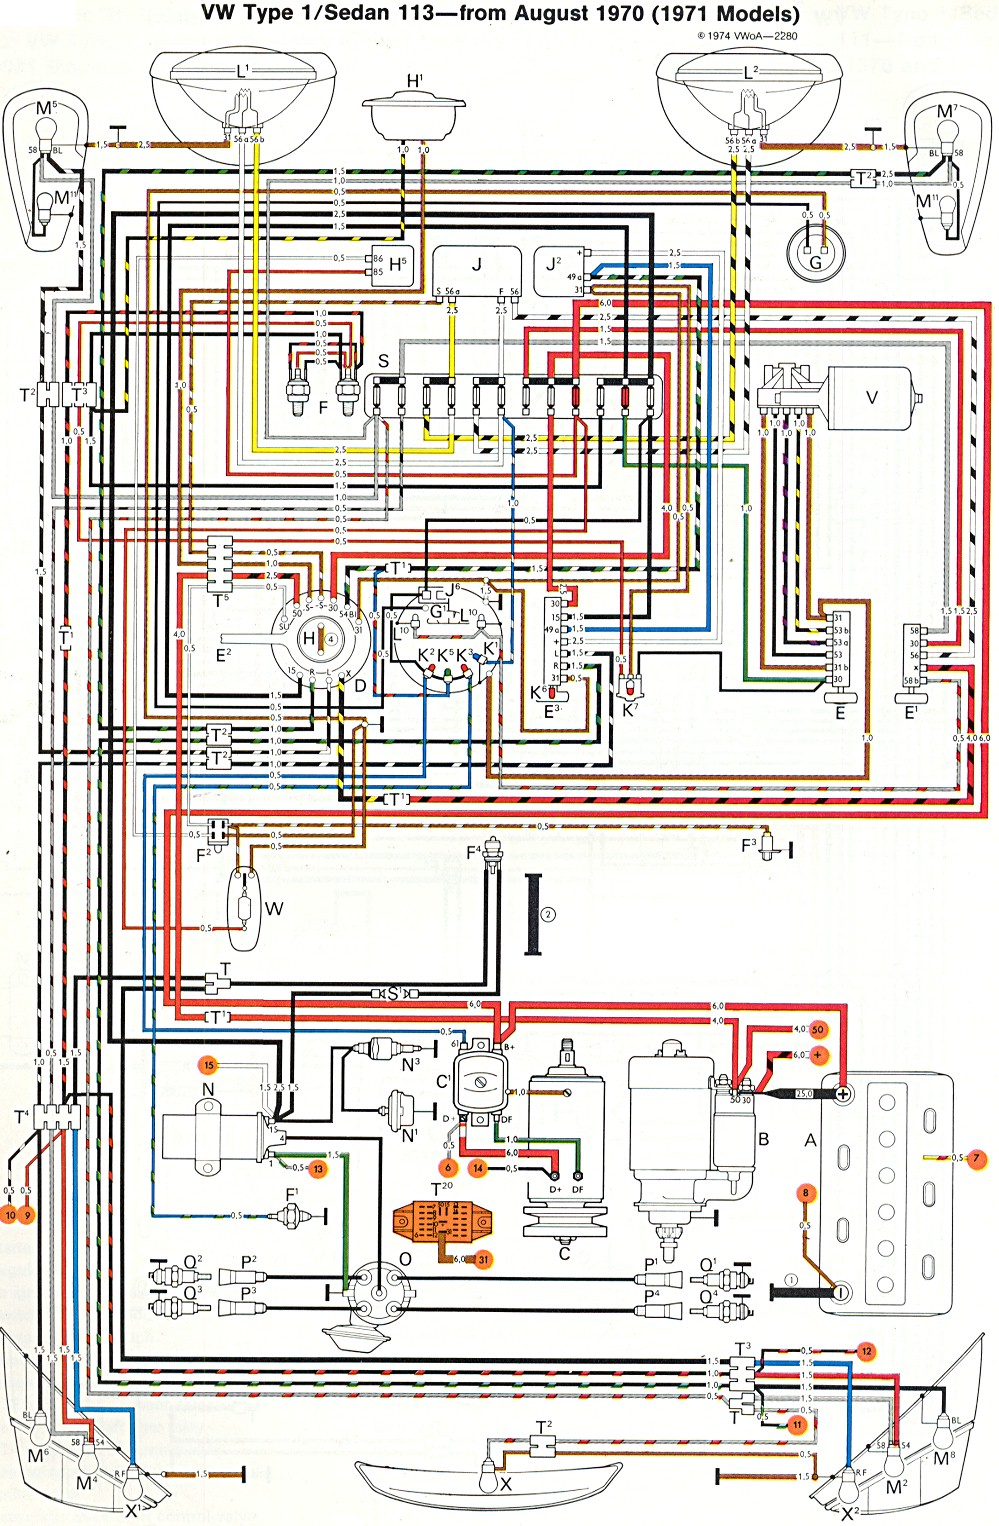 bug_super_71 2004 vw beetle wiring diagram 2004 vw beetle transmission problems 2000 vw beetle fuse diagram at mifinder.co